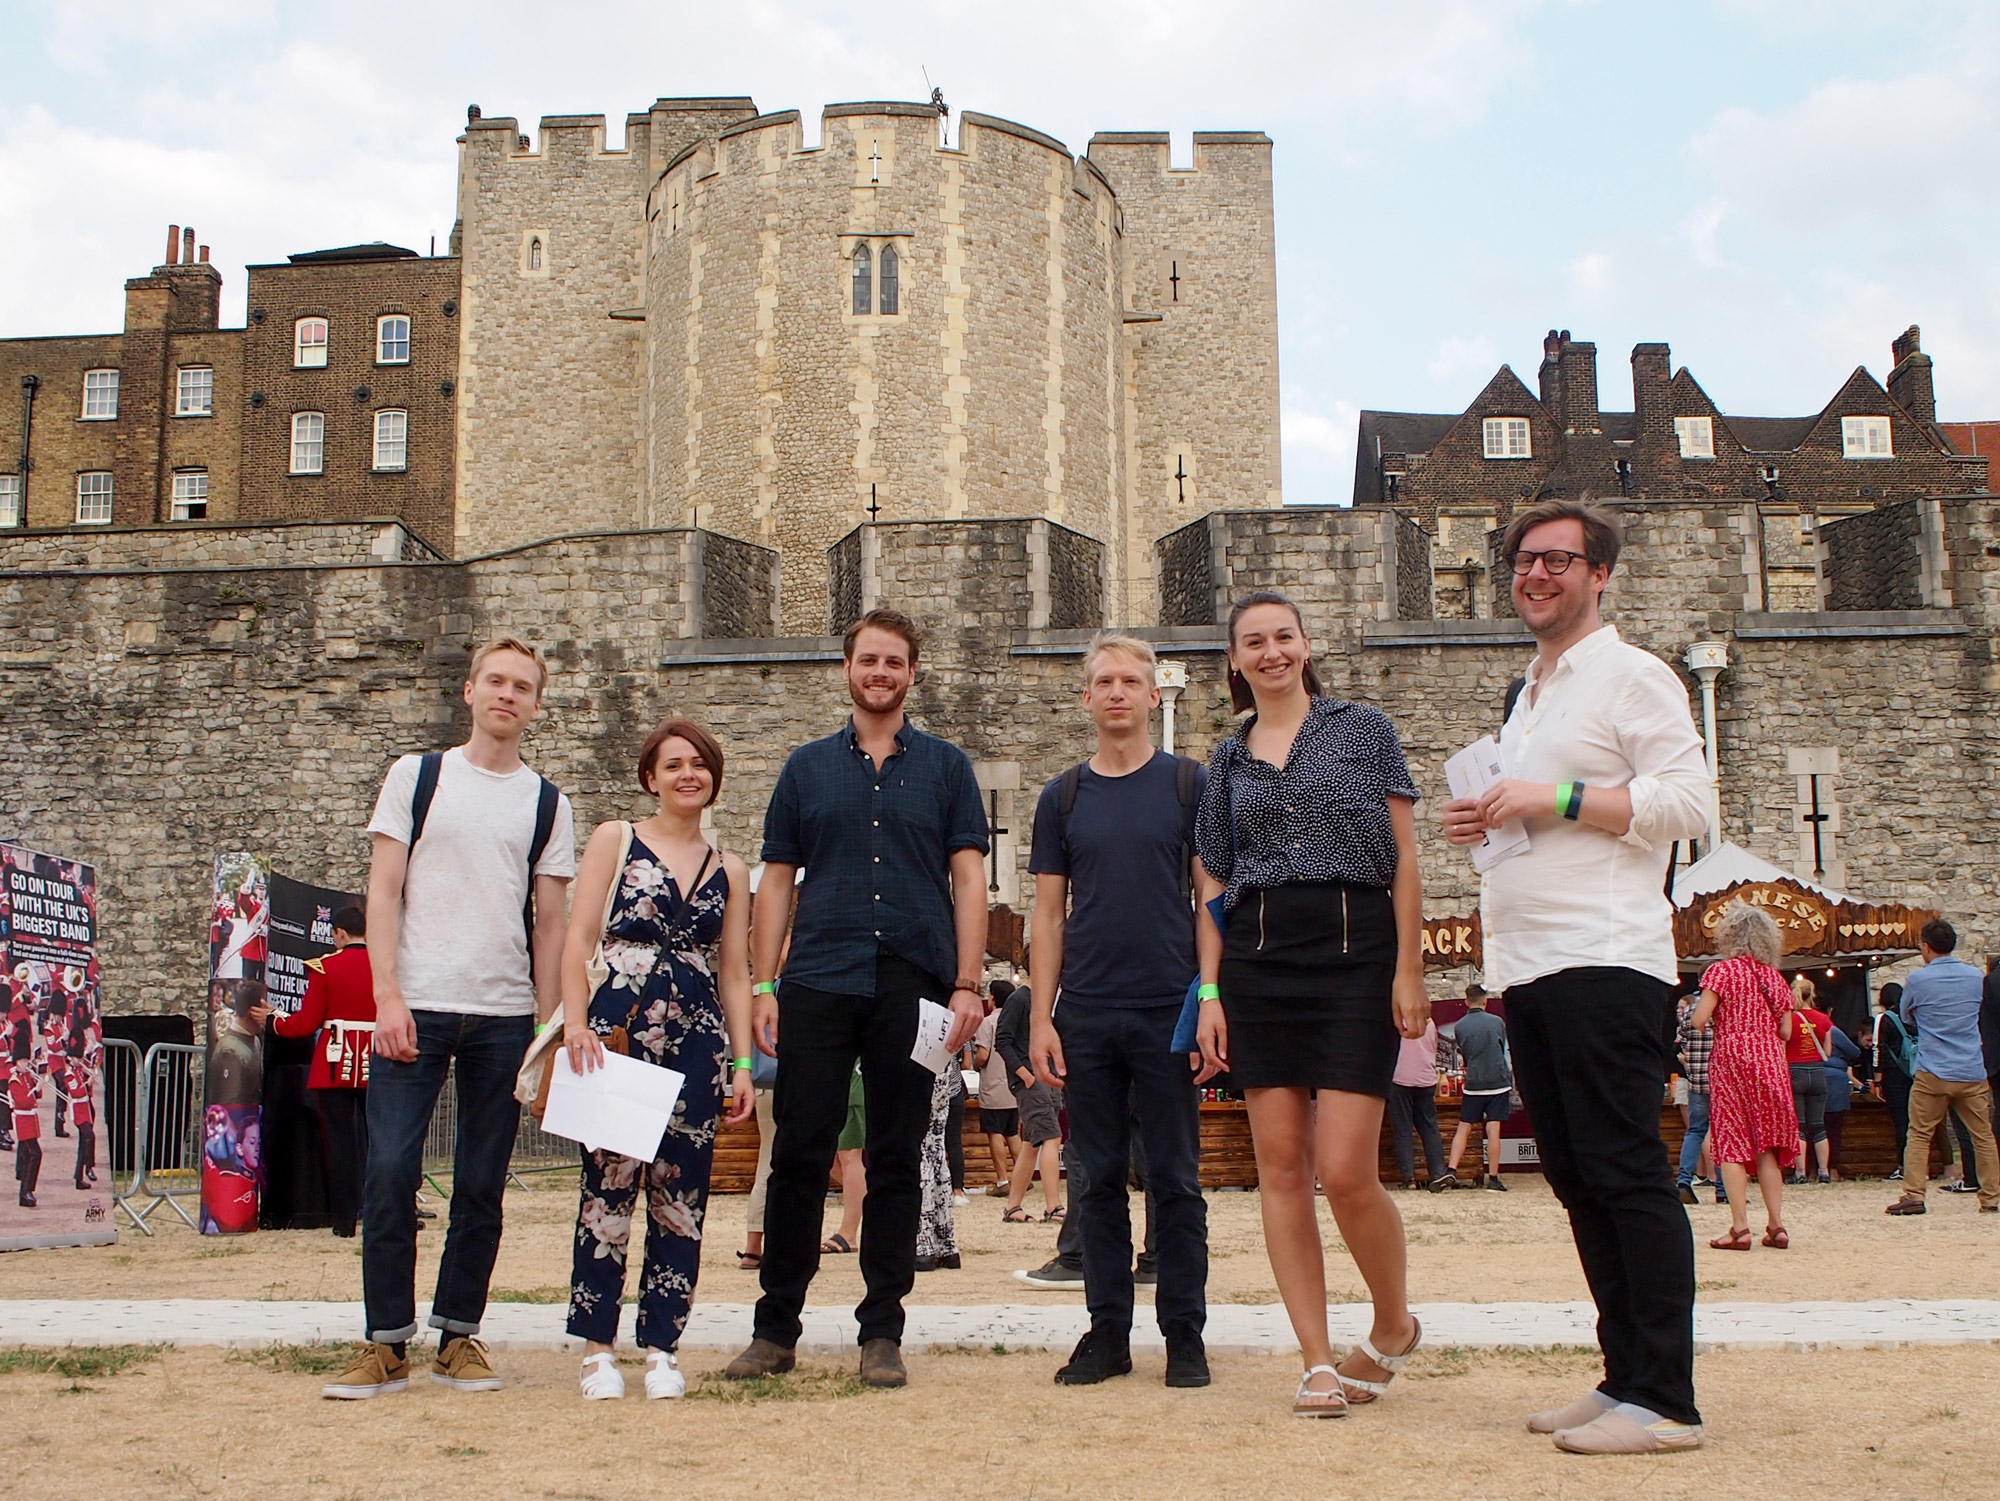 Six casually dressed young adults stand in front of the East Wall of the Tower of London.